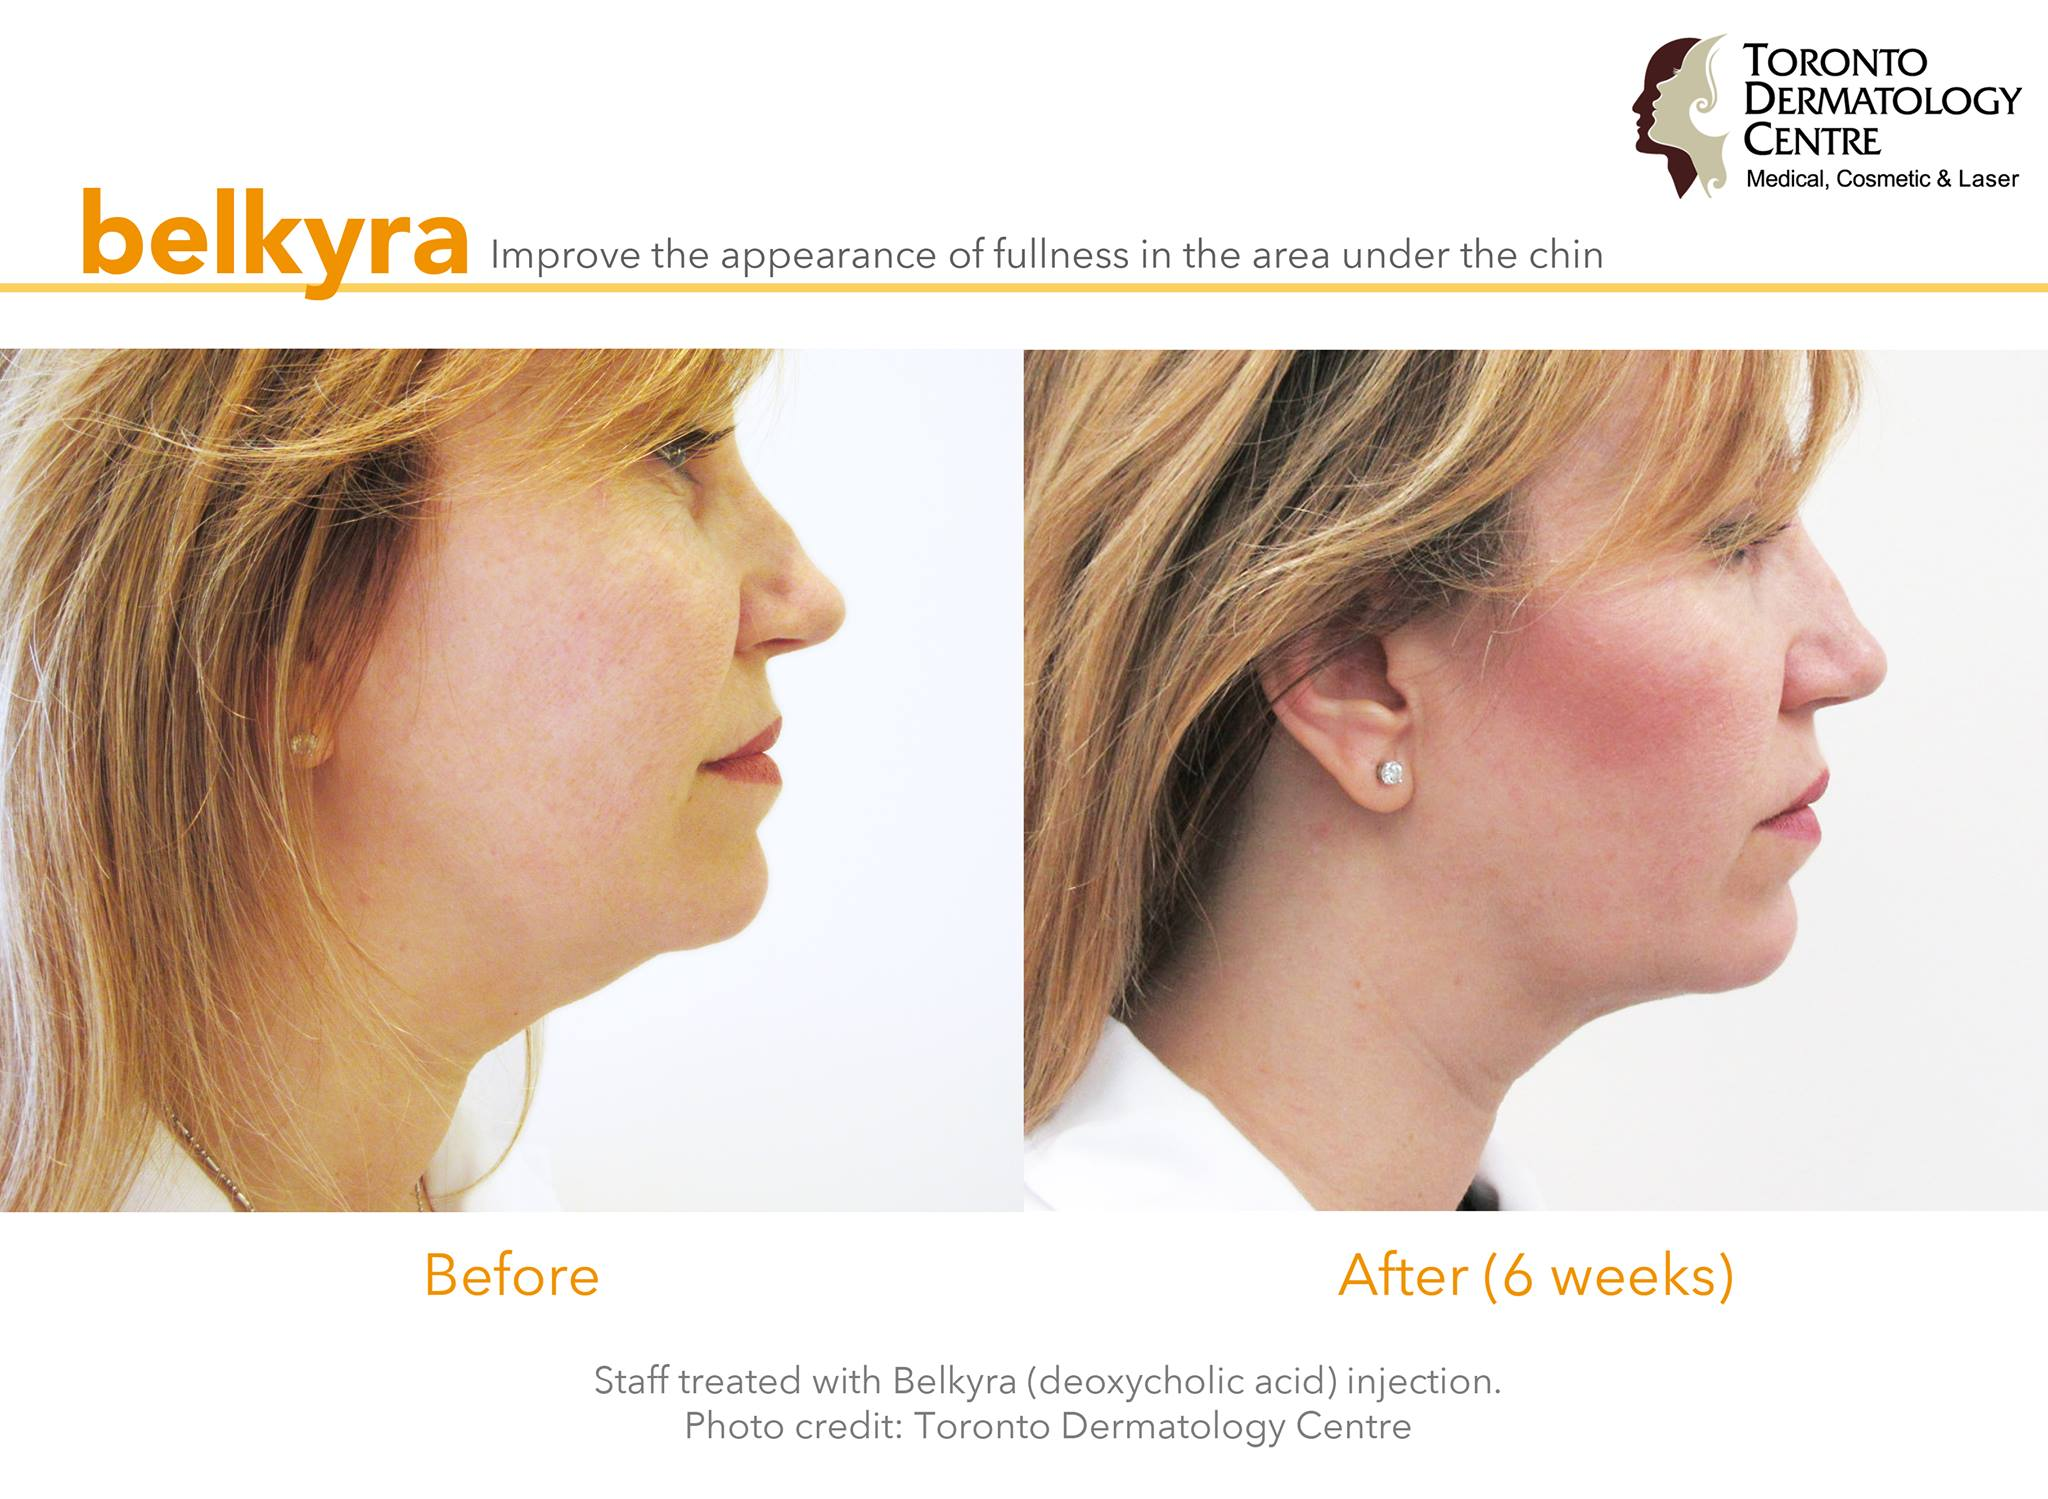 staff-belkyra-treamtent-before-and-after